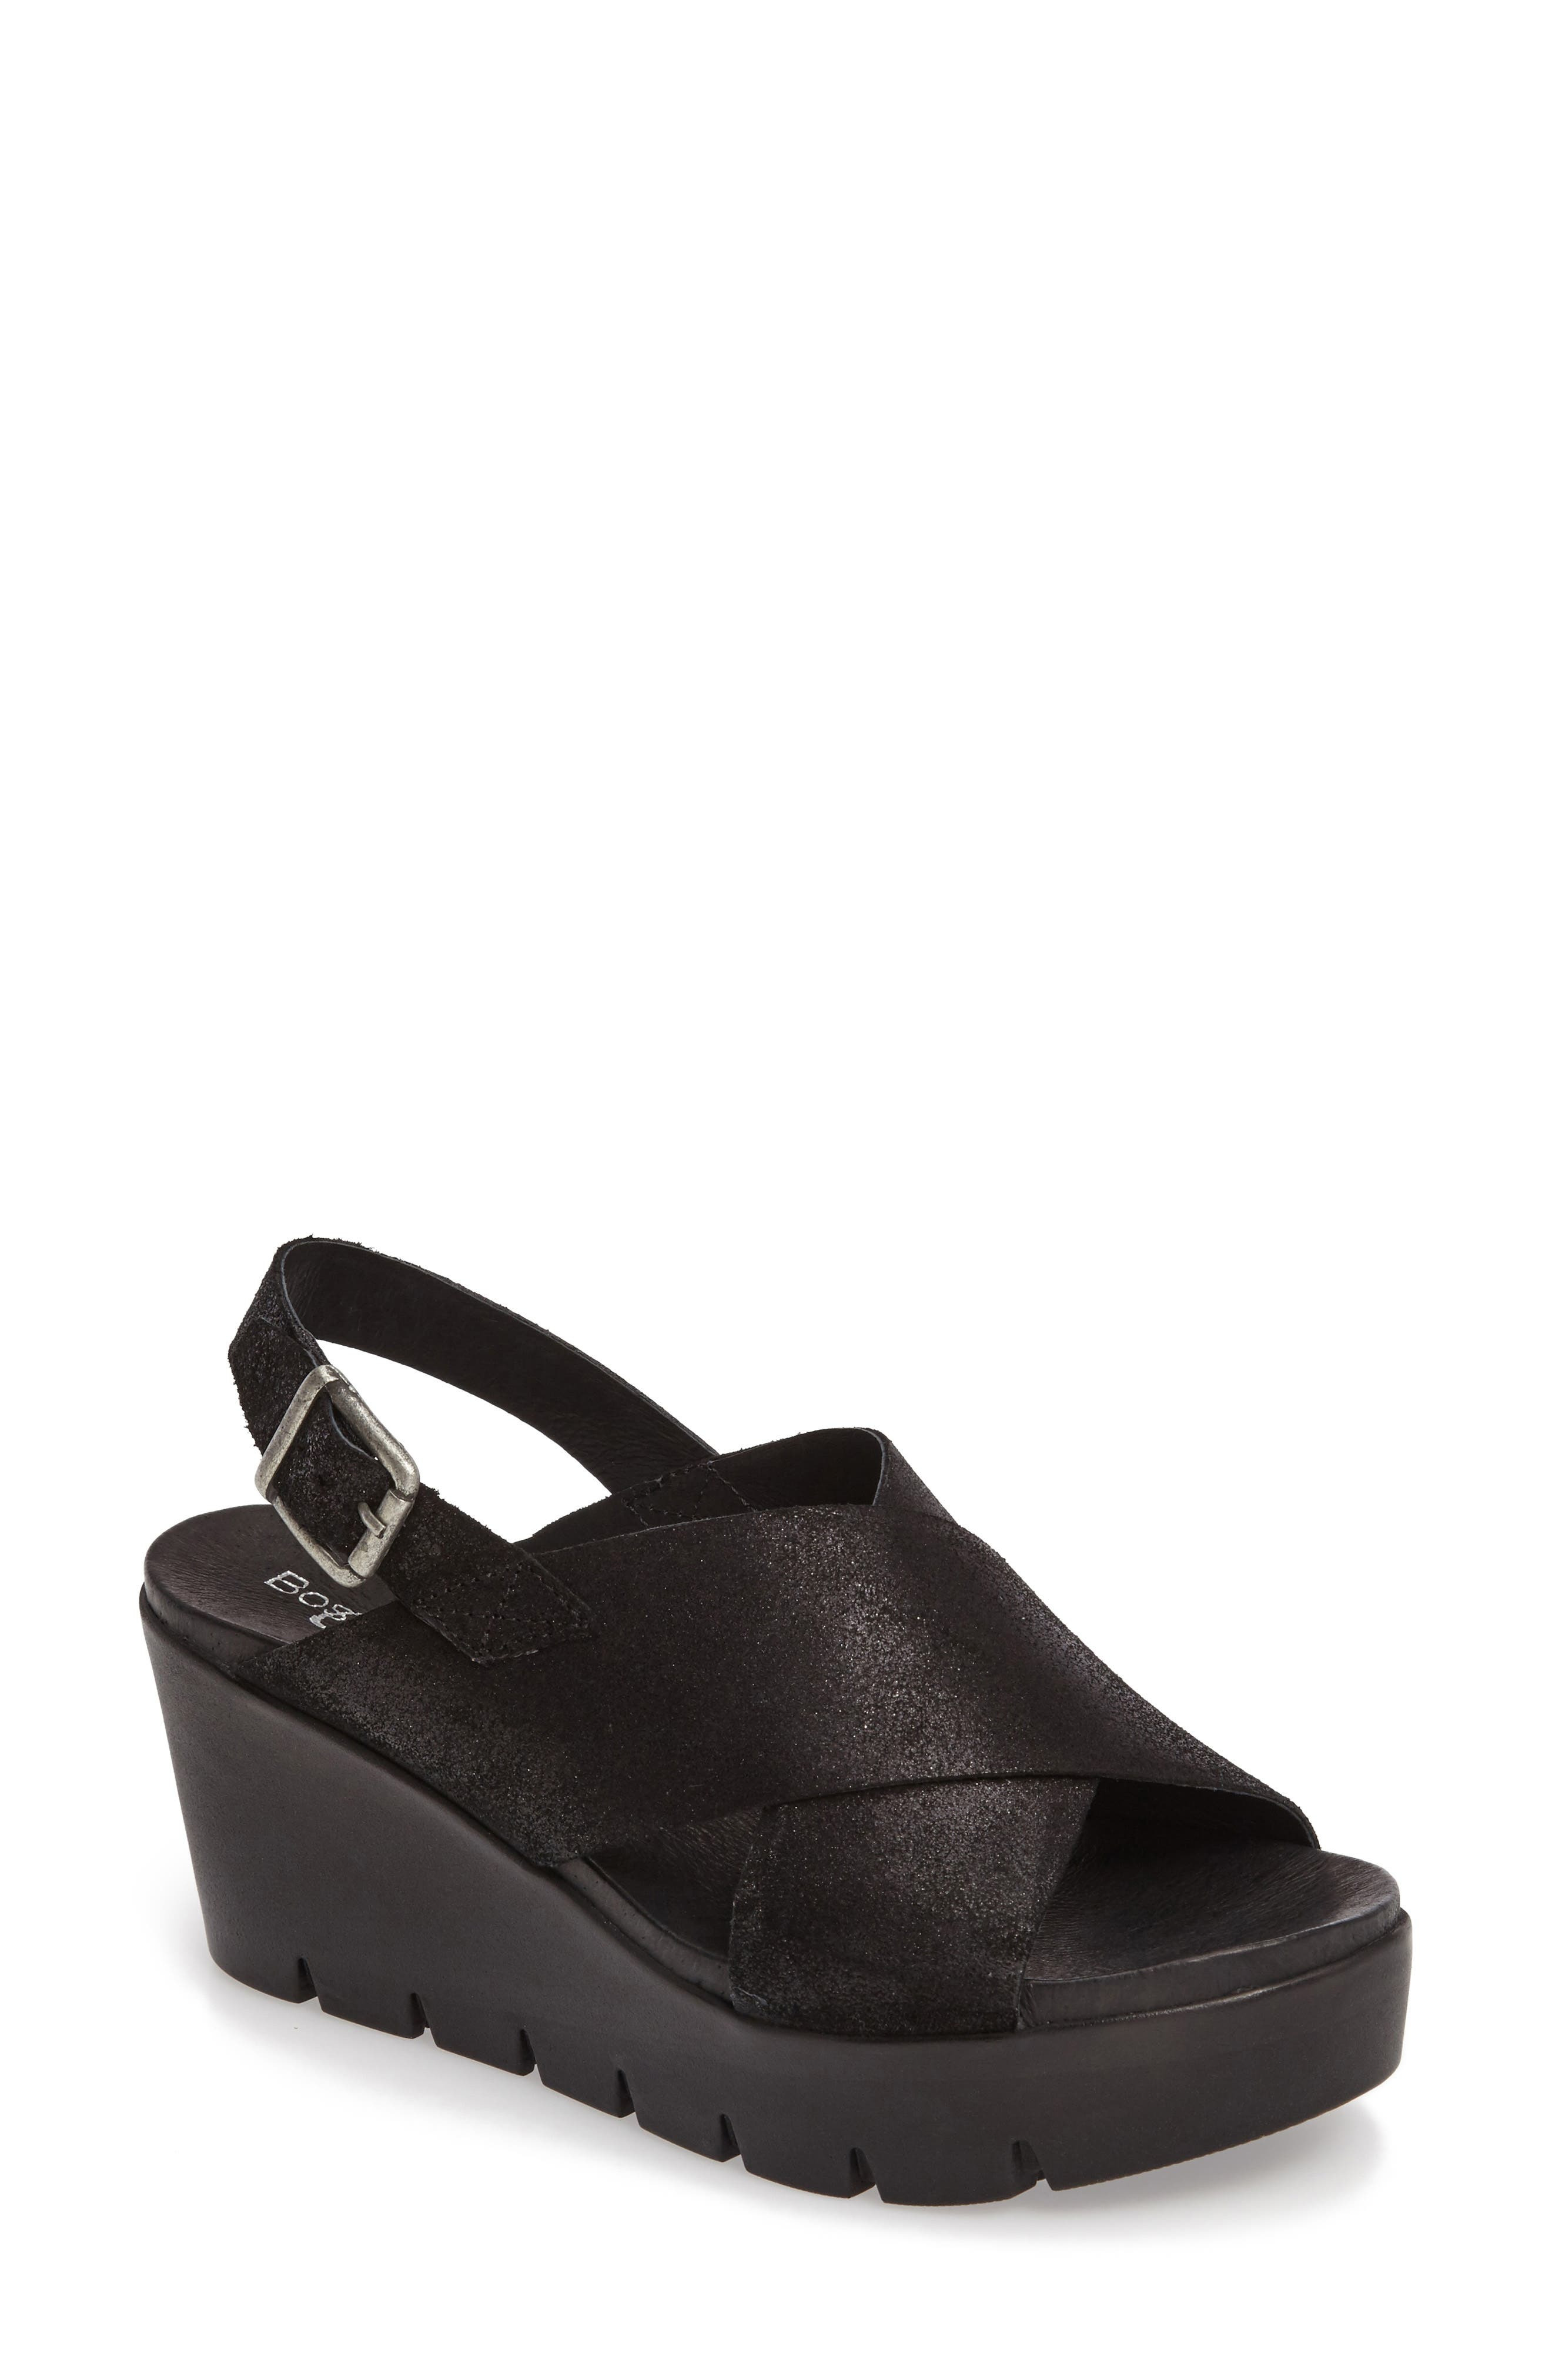 Payton Platform Wedge Sandal,                         Main,                         color, 001